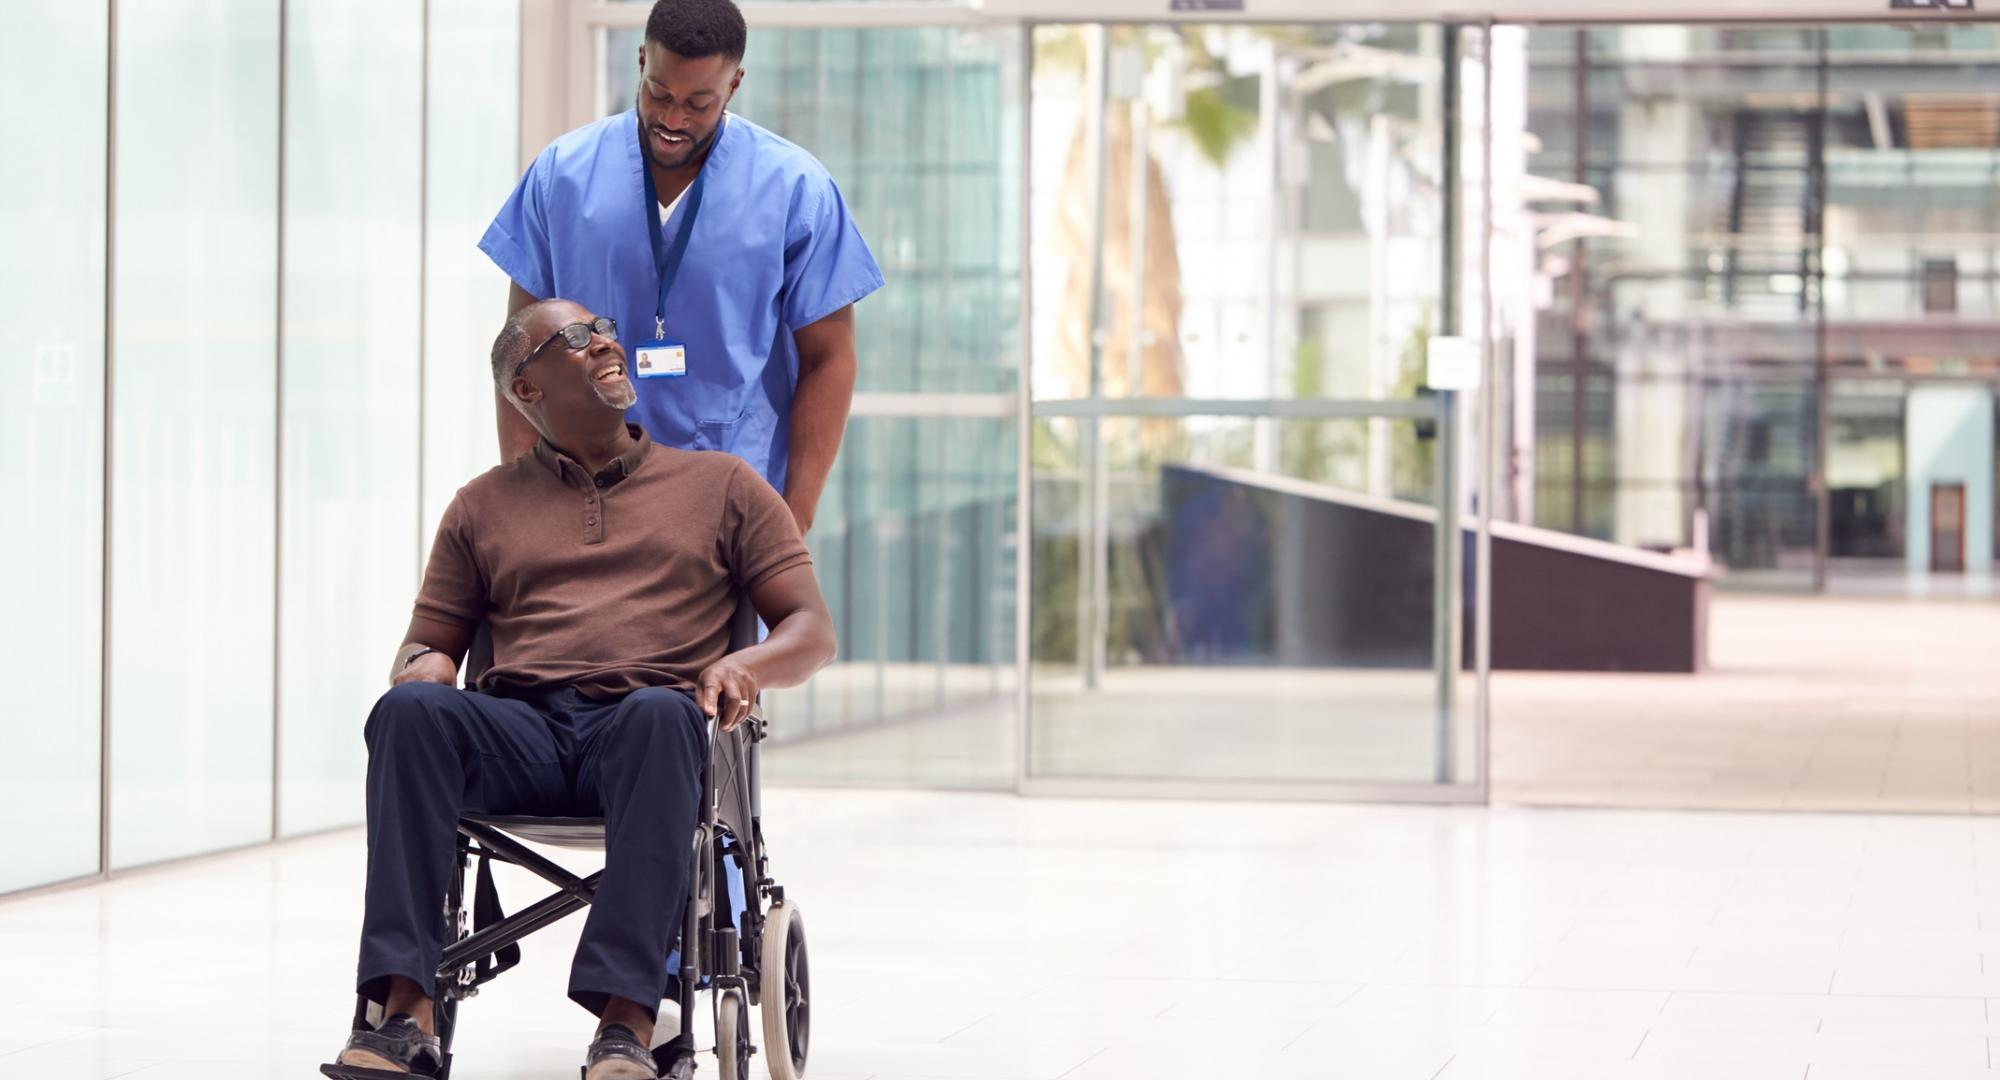 Porter pushing a patient through a hospital lobby